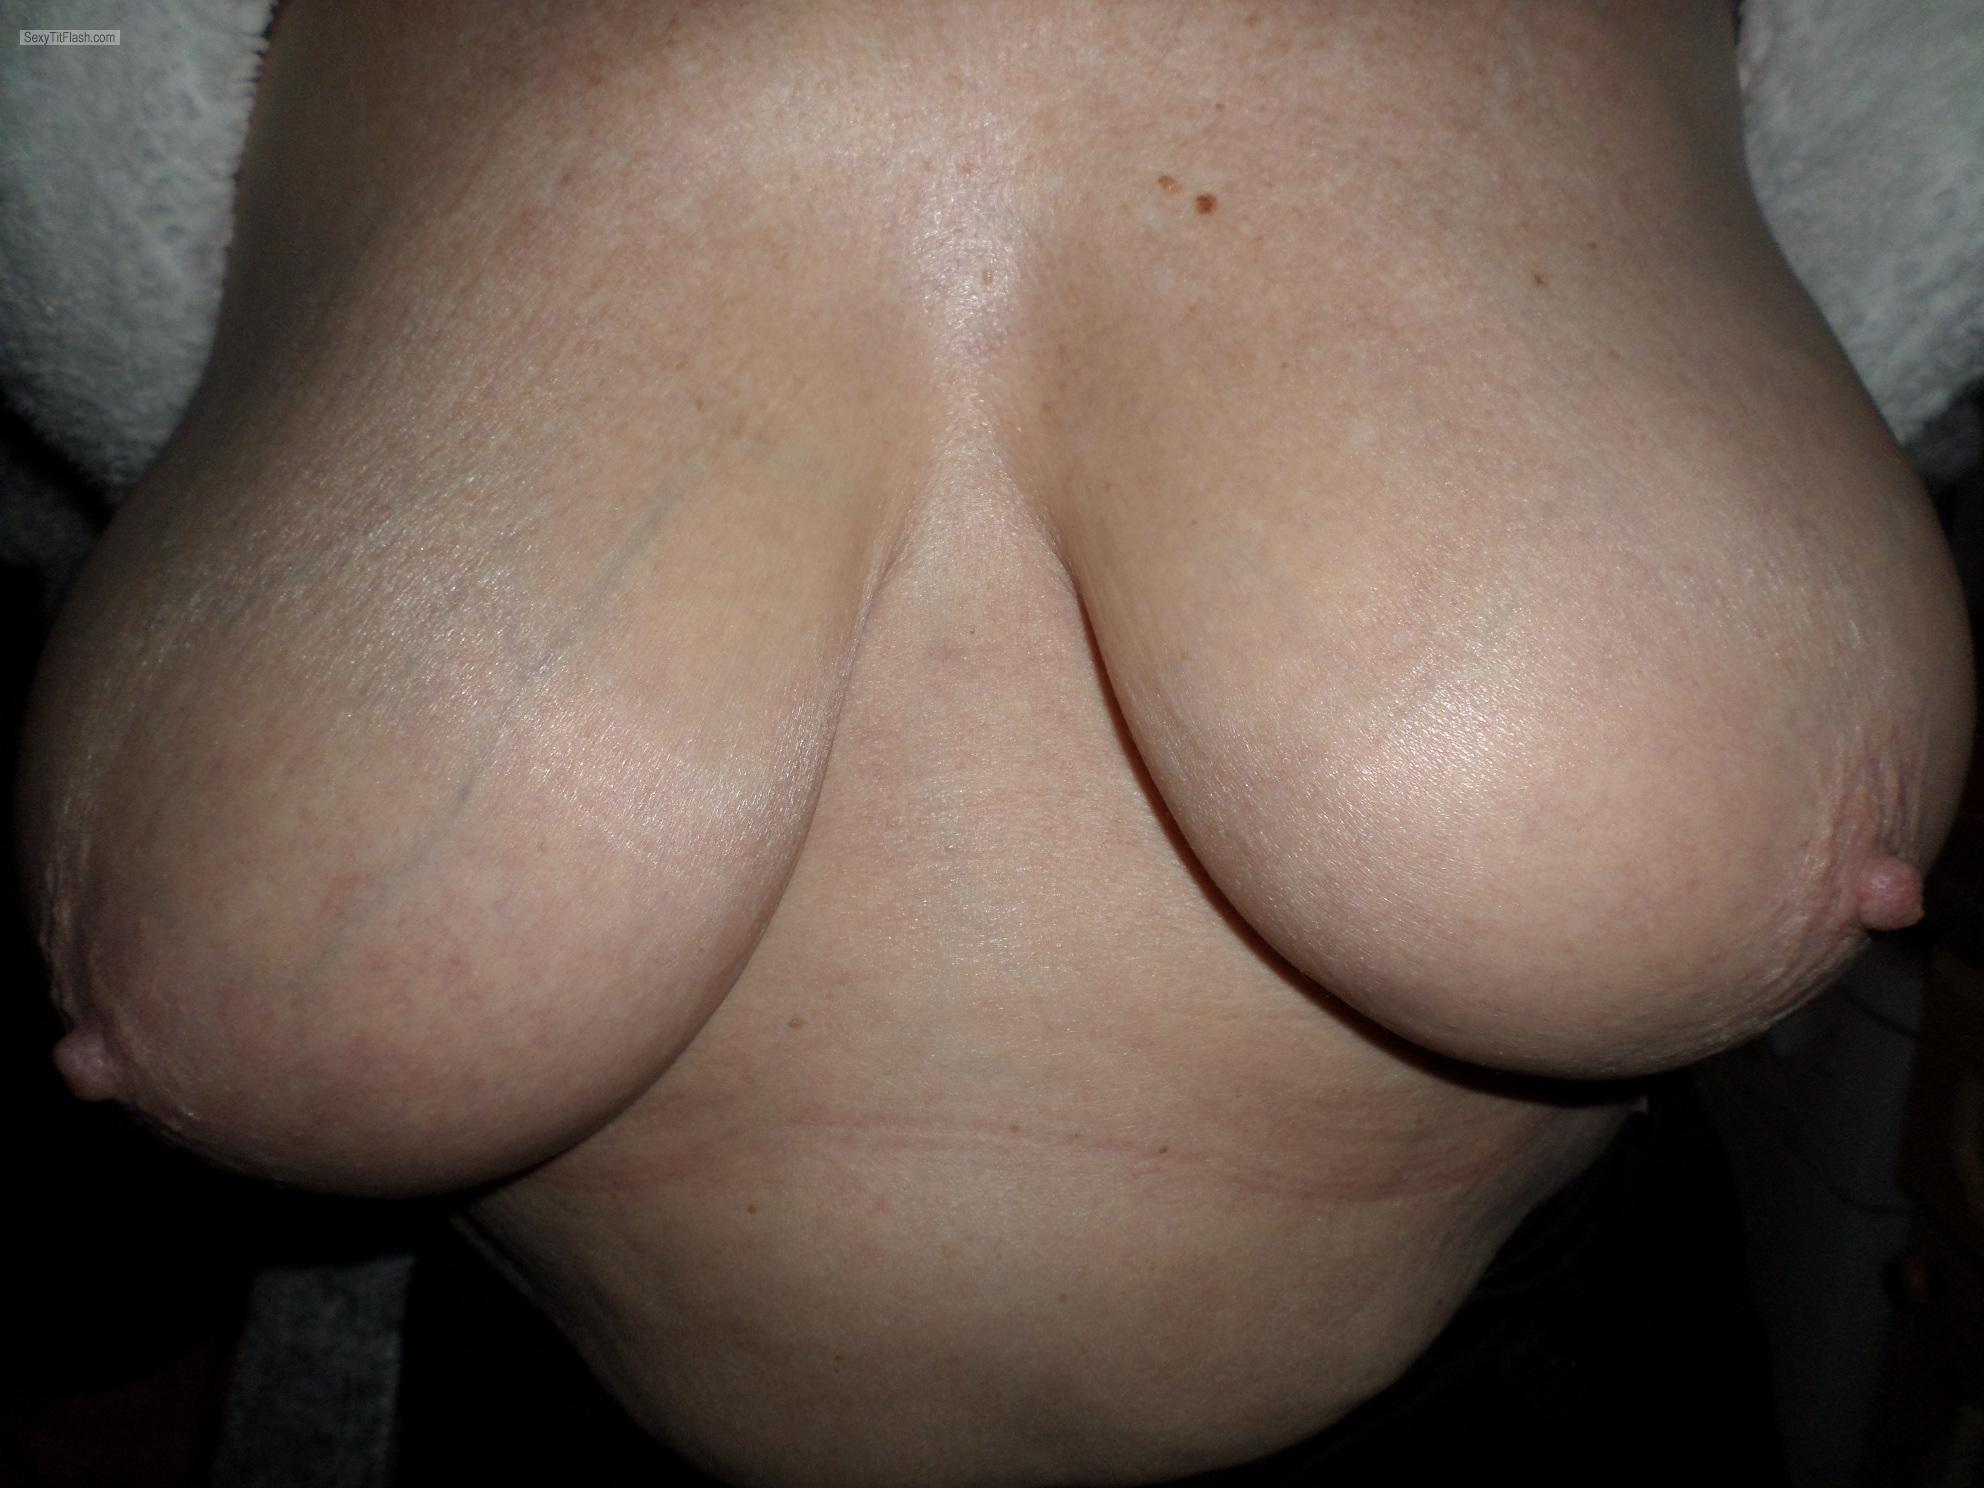 Tit Flash: My Very Big Tits - Horny 1 from United Kingdom